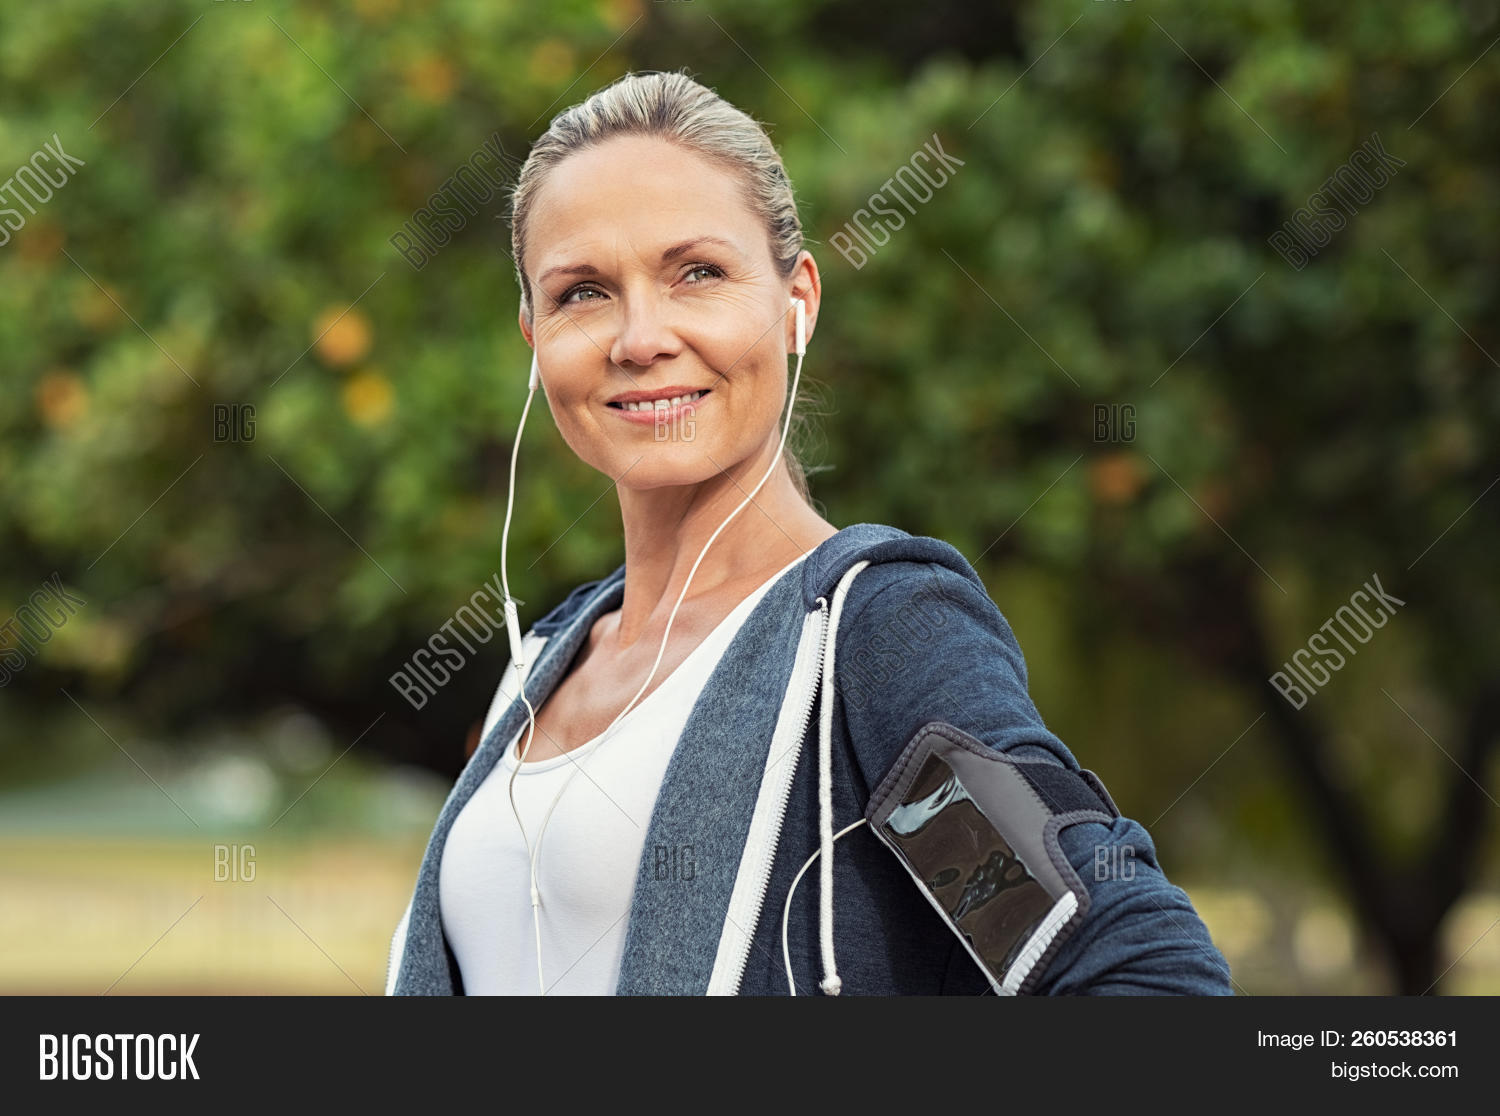 40 years,40s,activity,armband,autumn,beautiful,beautiful woman,blonde hair,break,determination,determined woman,earphones,exercise,female,fit,fitness,fitness training,happy,healthy,jacket,jogger,jogging,listening to music,looking away,mature,matured,mid,mid adult woman,music,outdoor,park,people,portrait,proud,resting,run,runner,satisfied,smartphone,smile,sport,sports,thinking,toothy smile,training,woman,workout